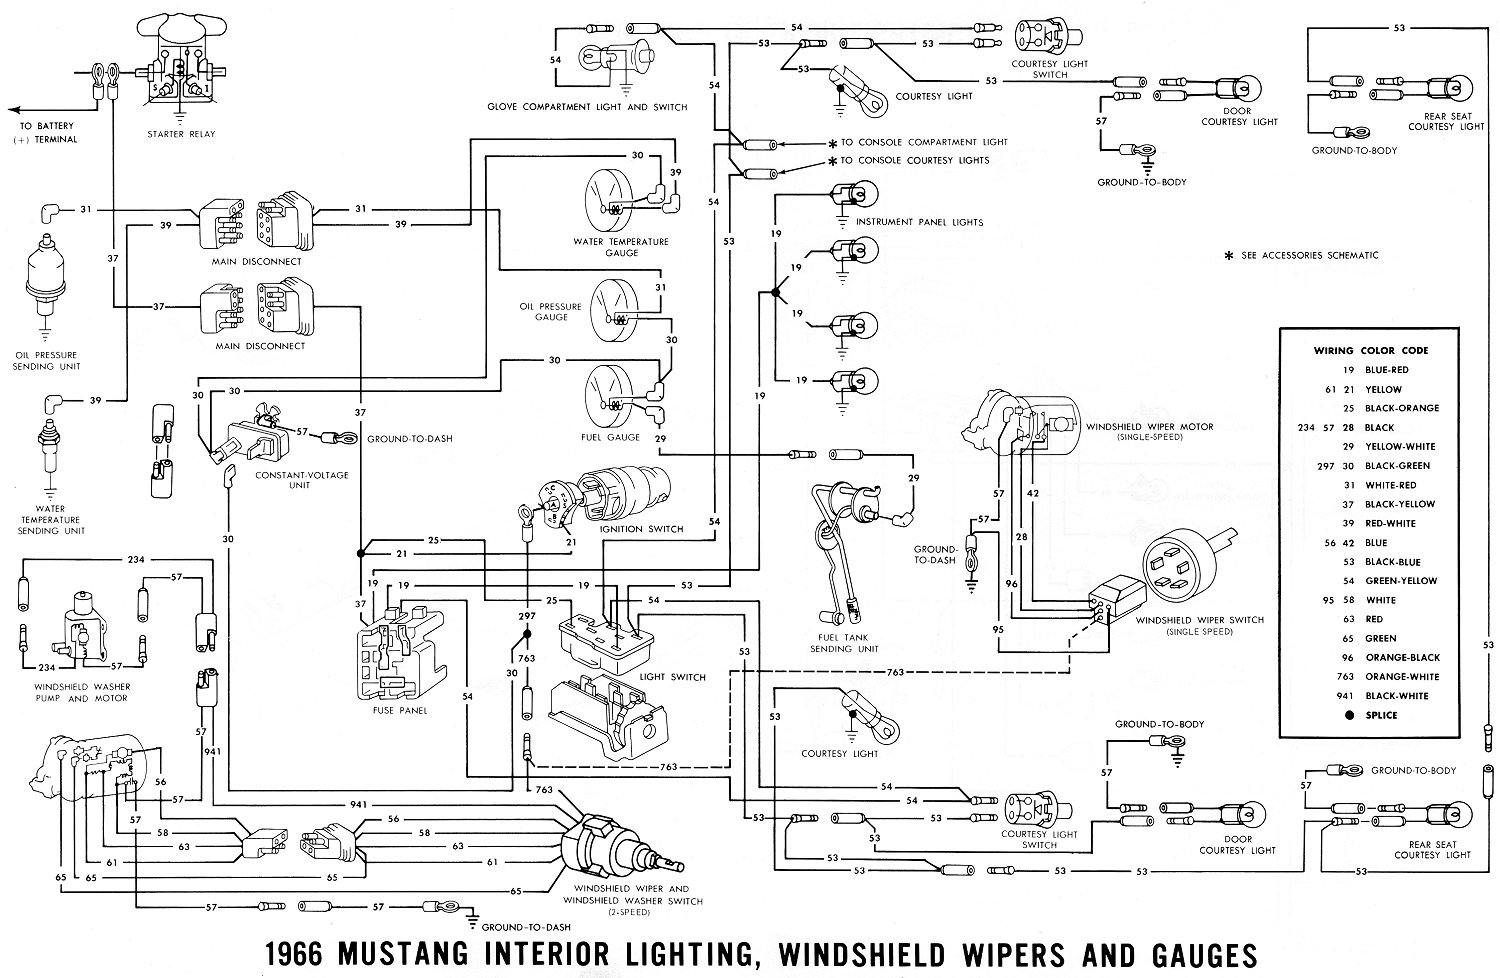 66inter1 1966 mustang wiring diagrams average joe restoration 67 mustang dash wiring diagram at virtualis.co